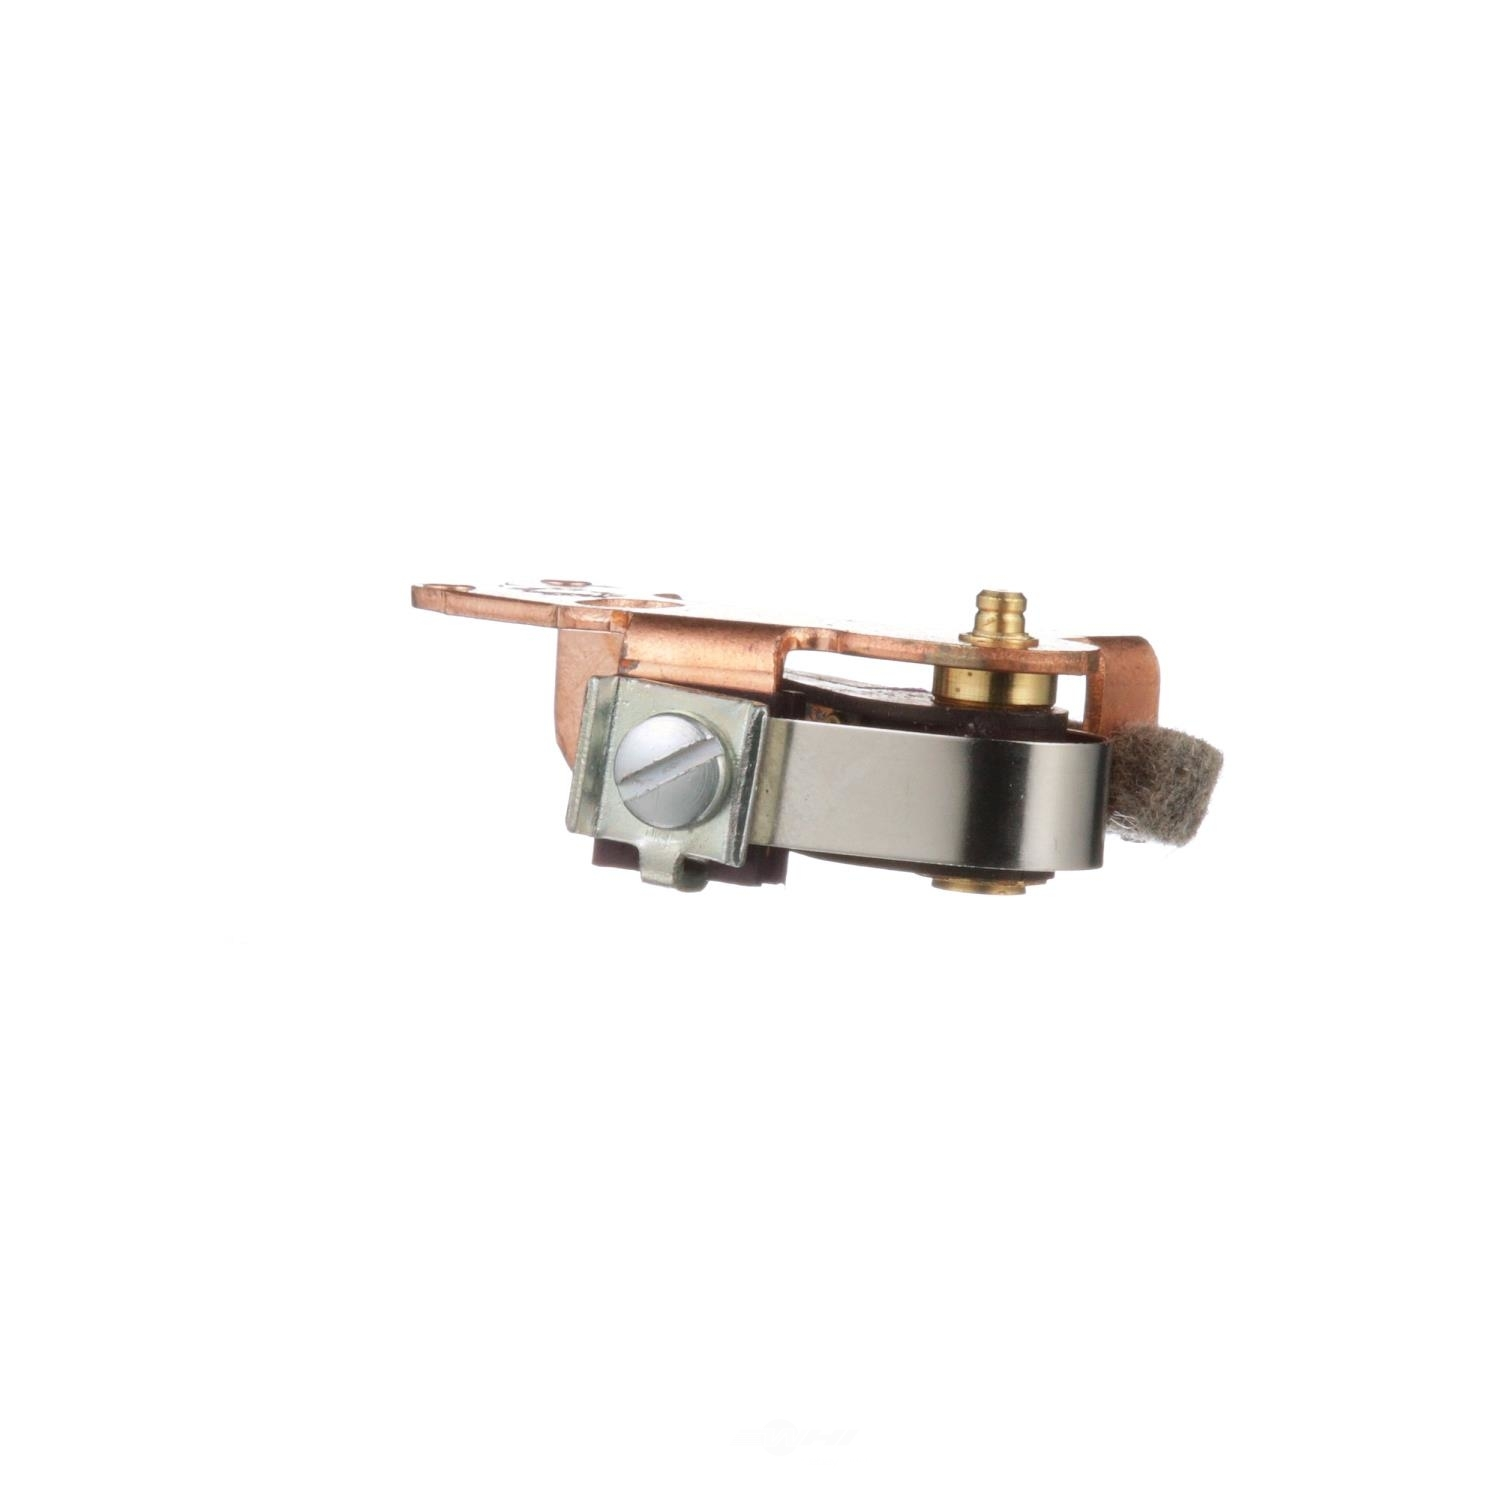 STANDARD MOTOR PRODUCTS - Ignition Contact Set - STA DR-2240